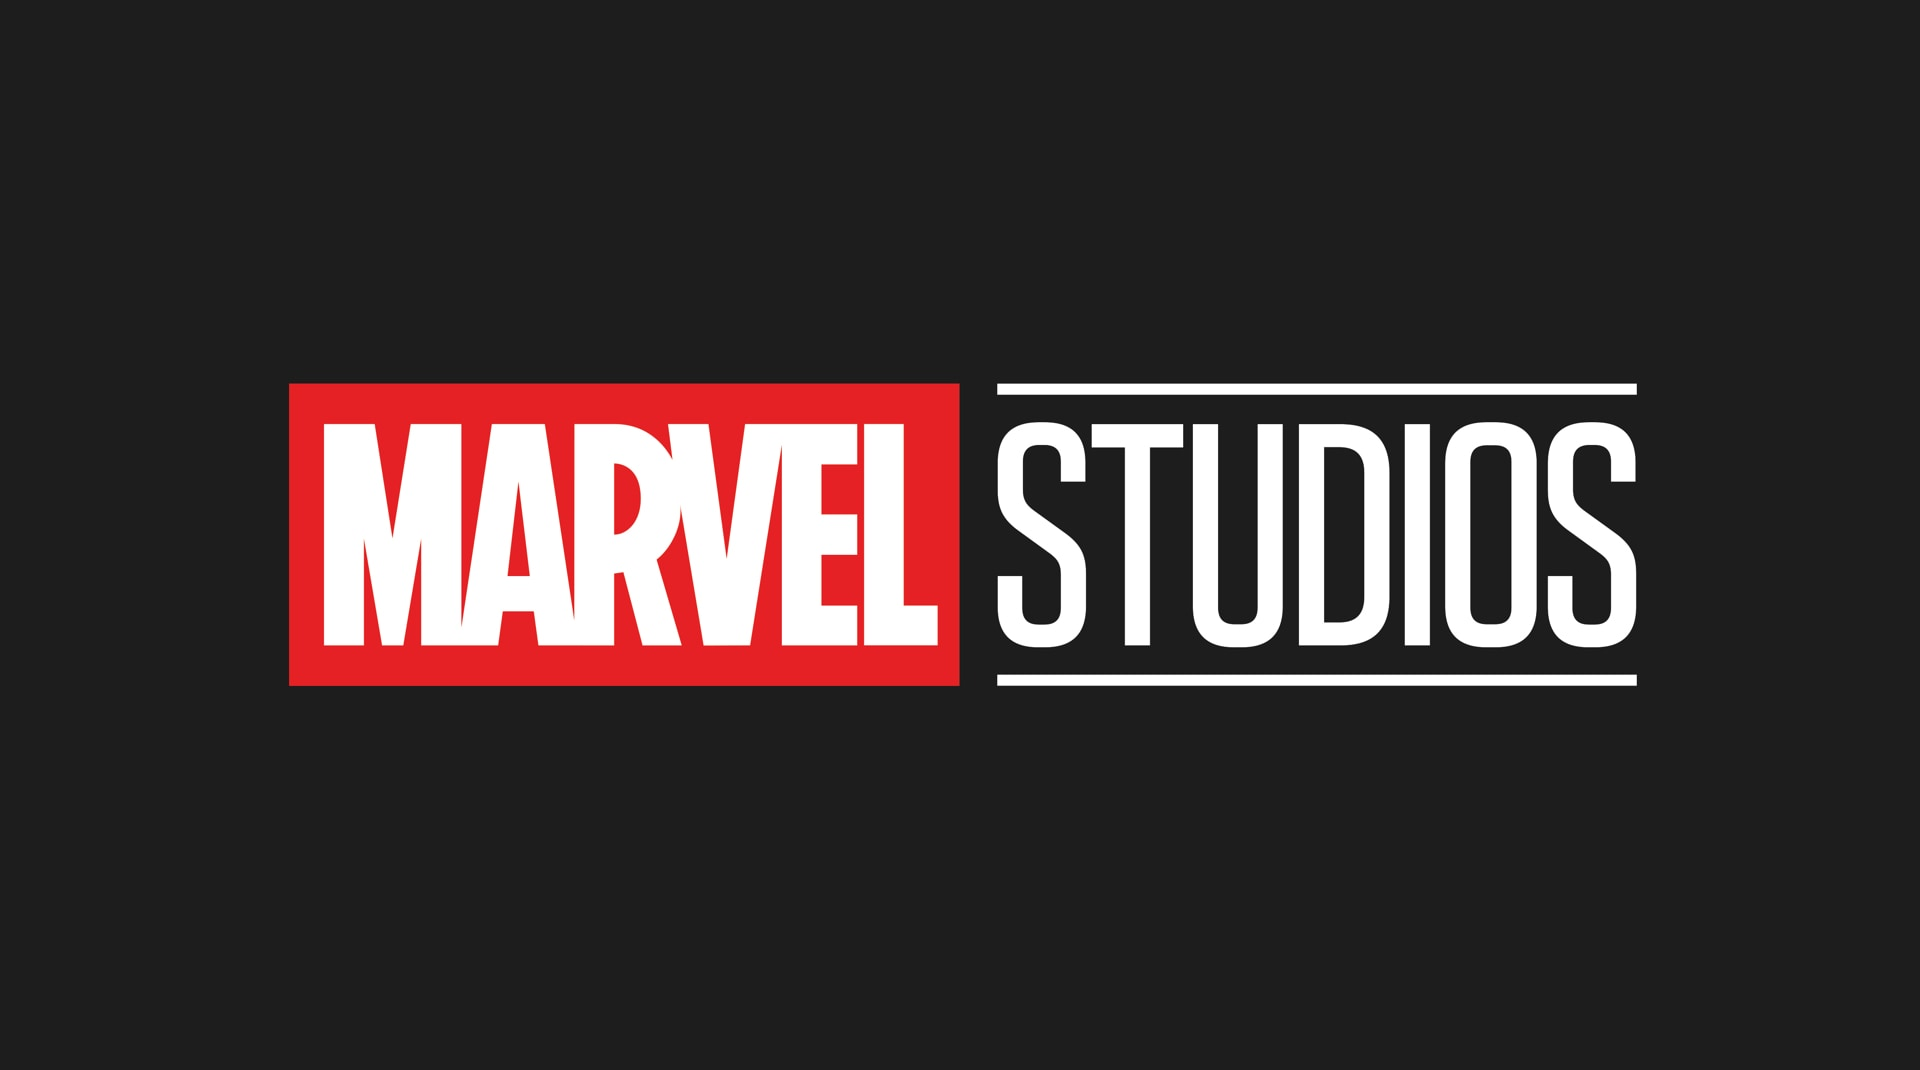 A logo from Marvel Studio